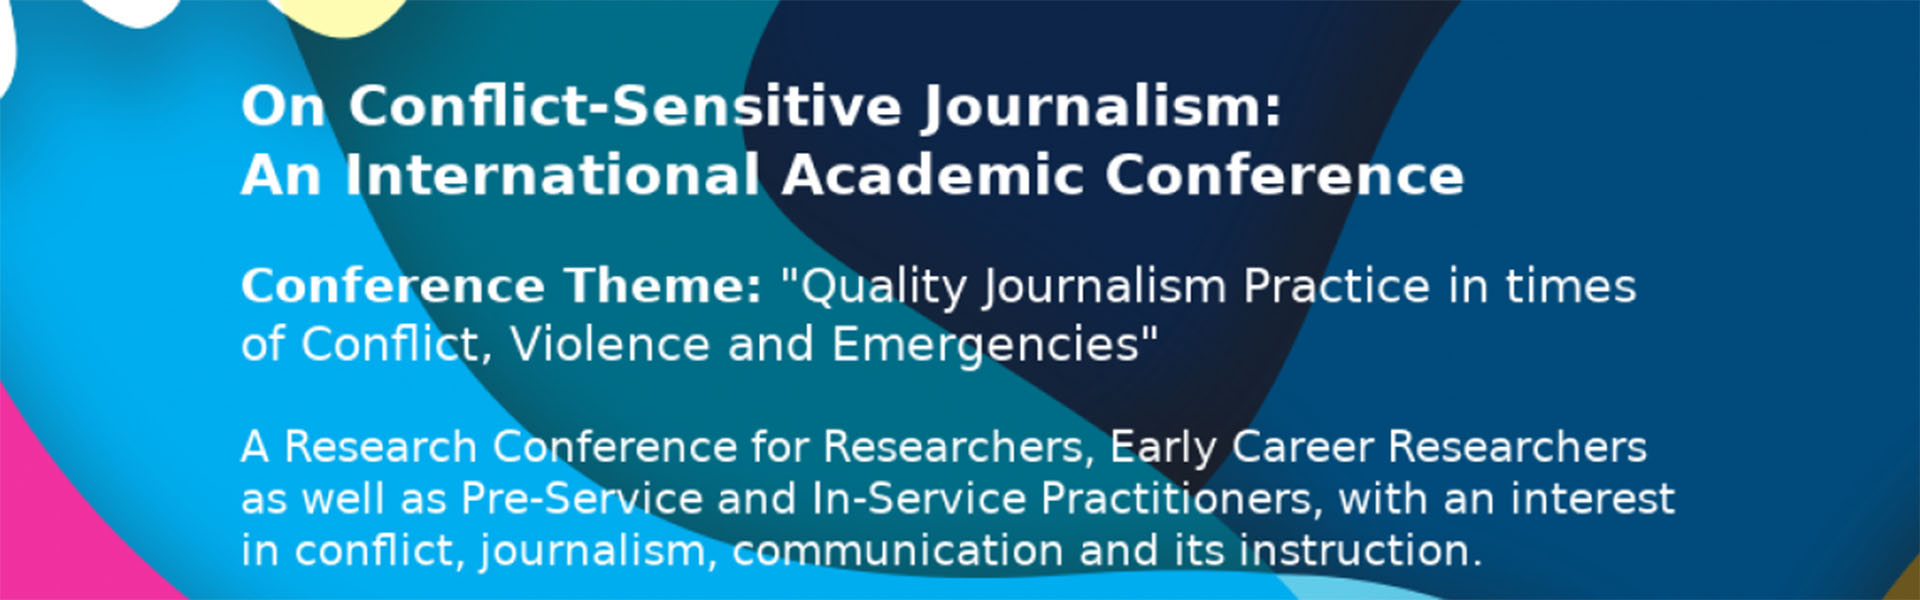 Conflict-Sensitive Journalism - an International Academic Conference